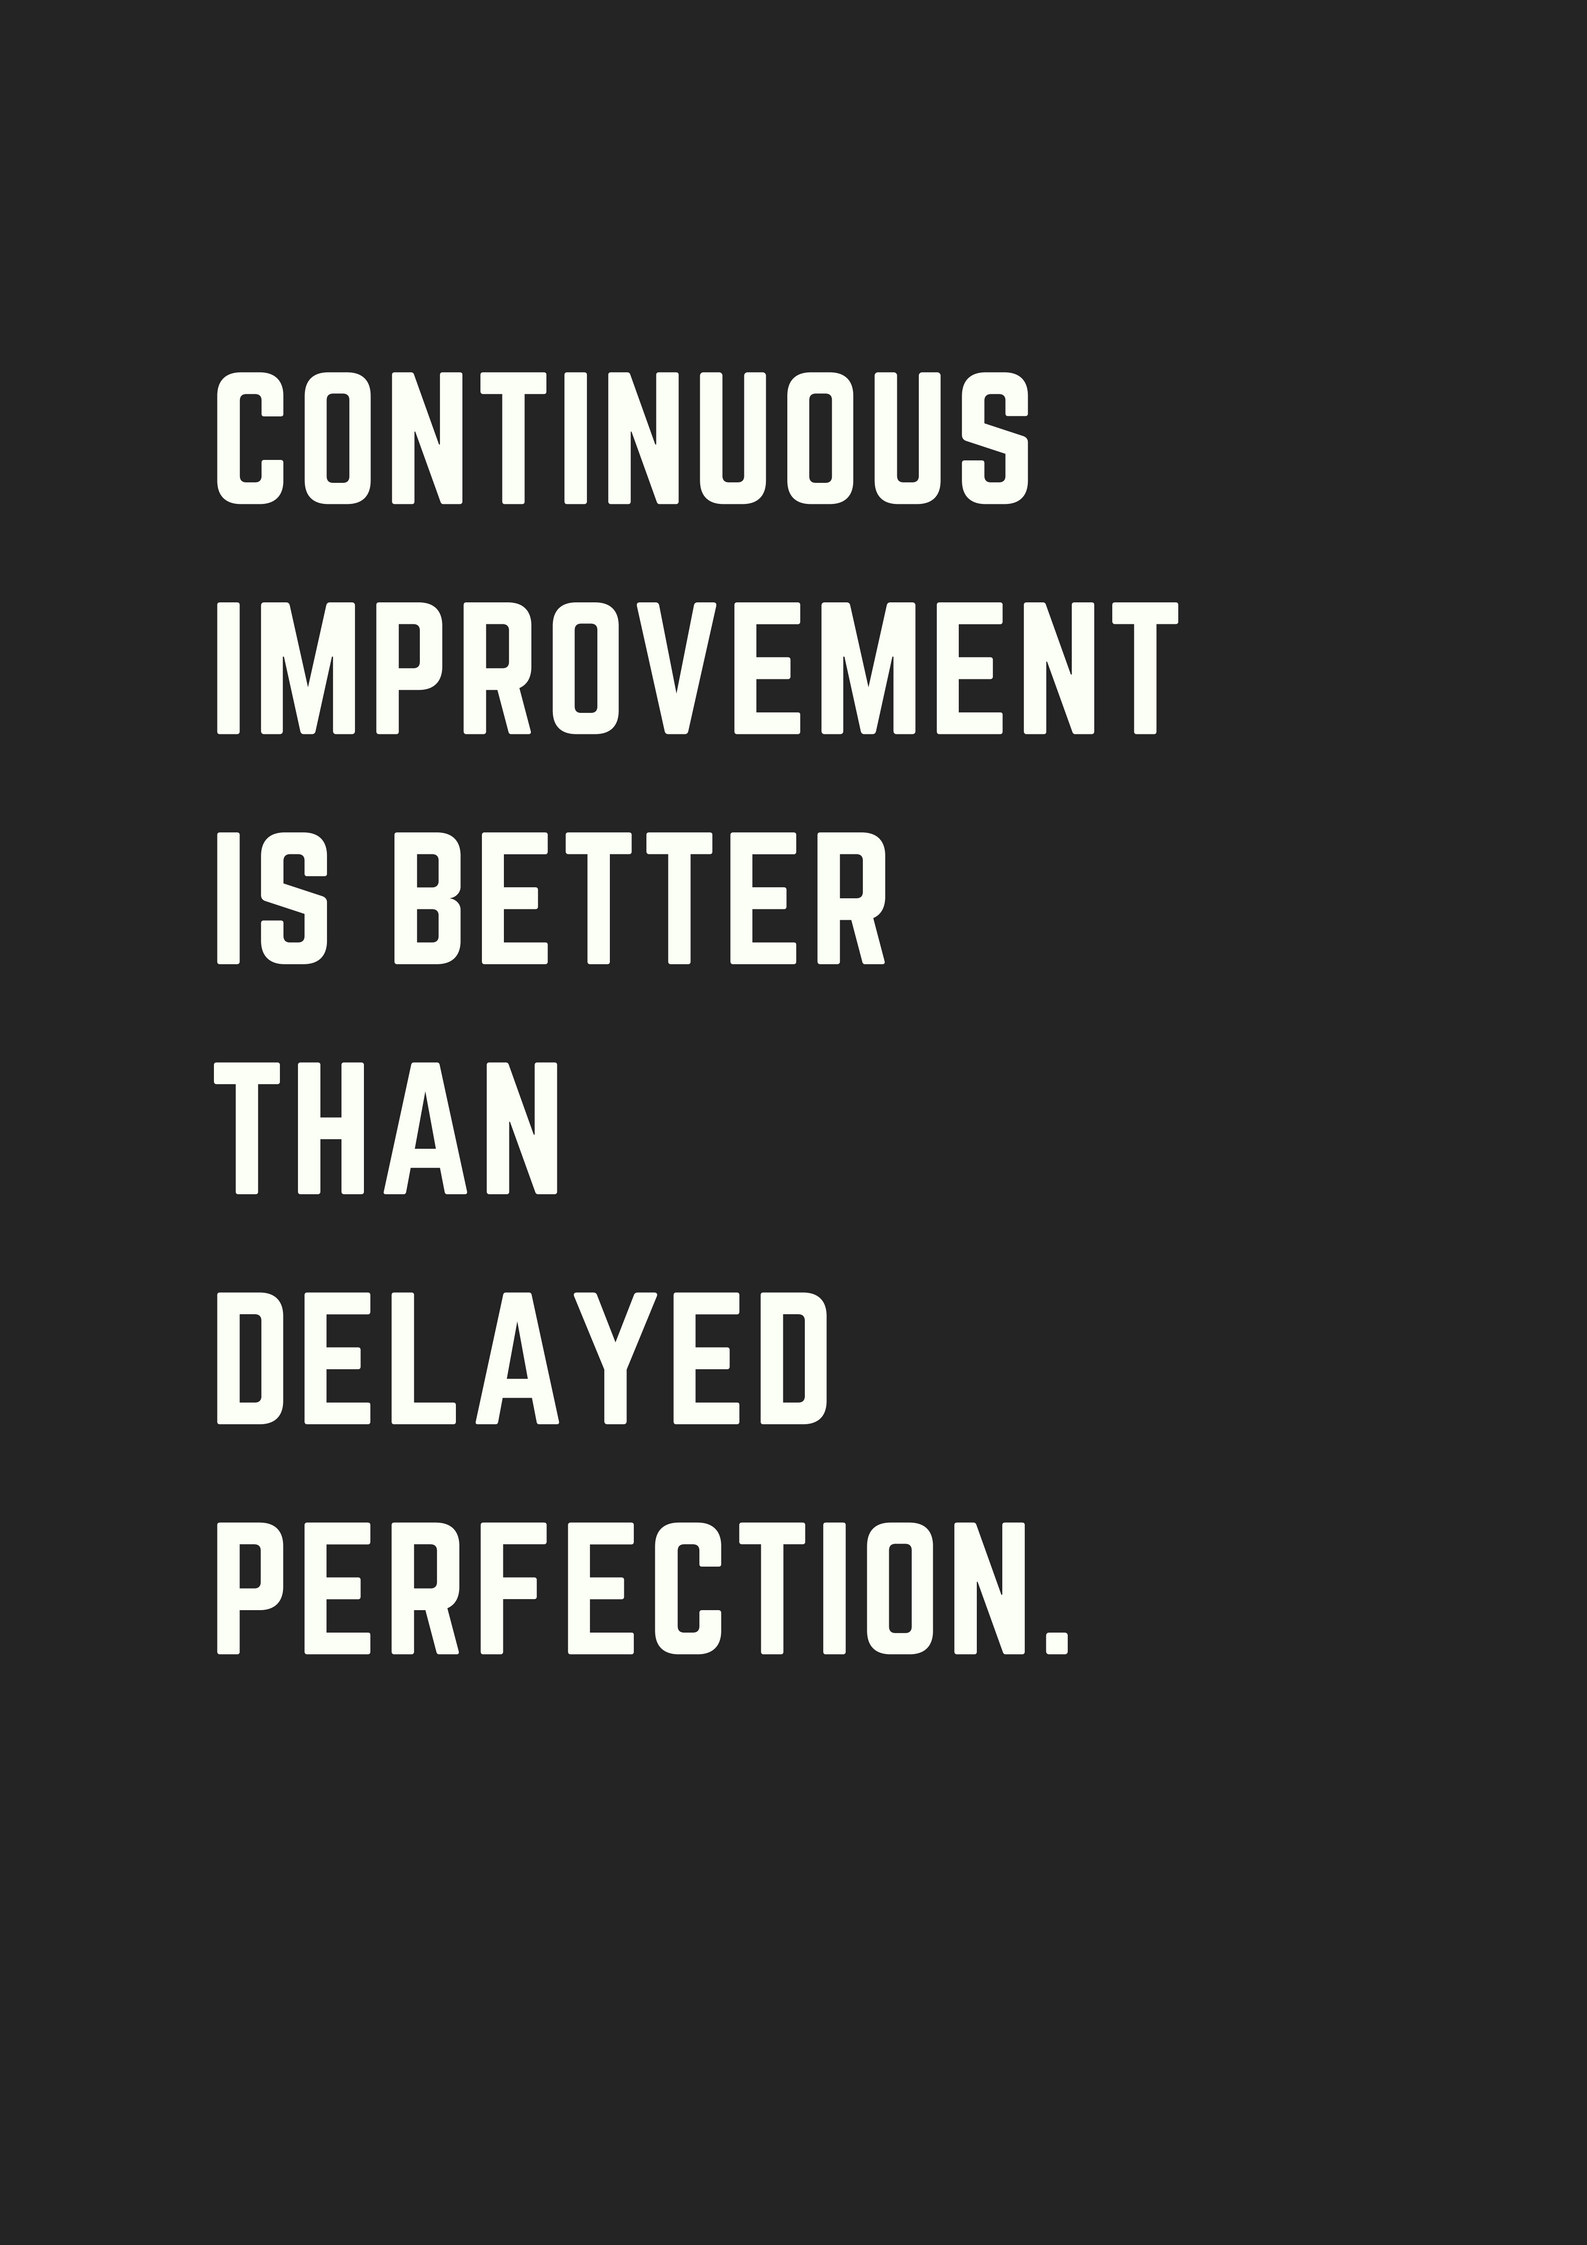 Top 30 Black White Inspirational Quotes Success Quotes Images Inspirational Quotes For Students Best Motivational Quotes Ever